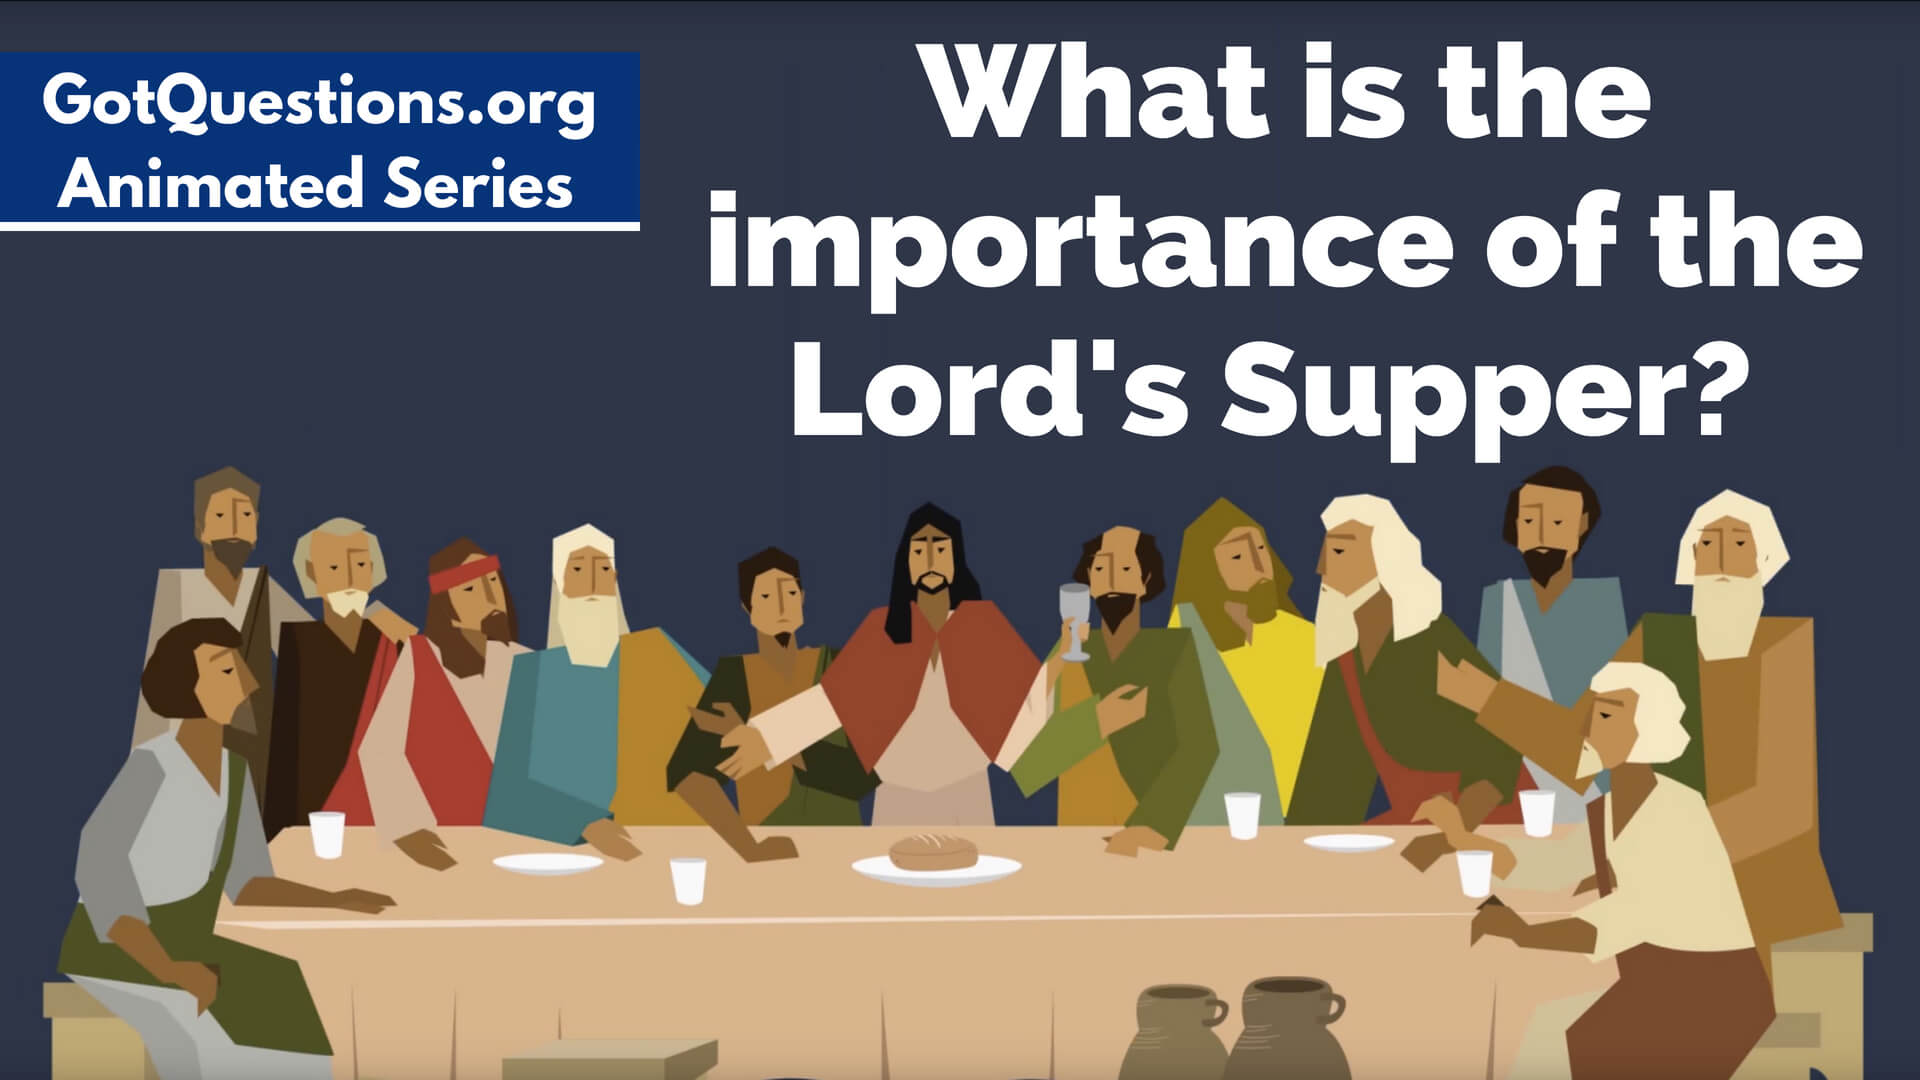 what is the importance of the lord's supper / christian communion?